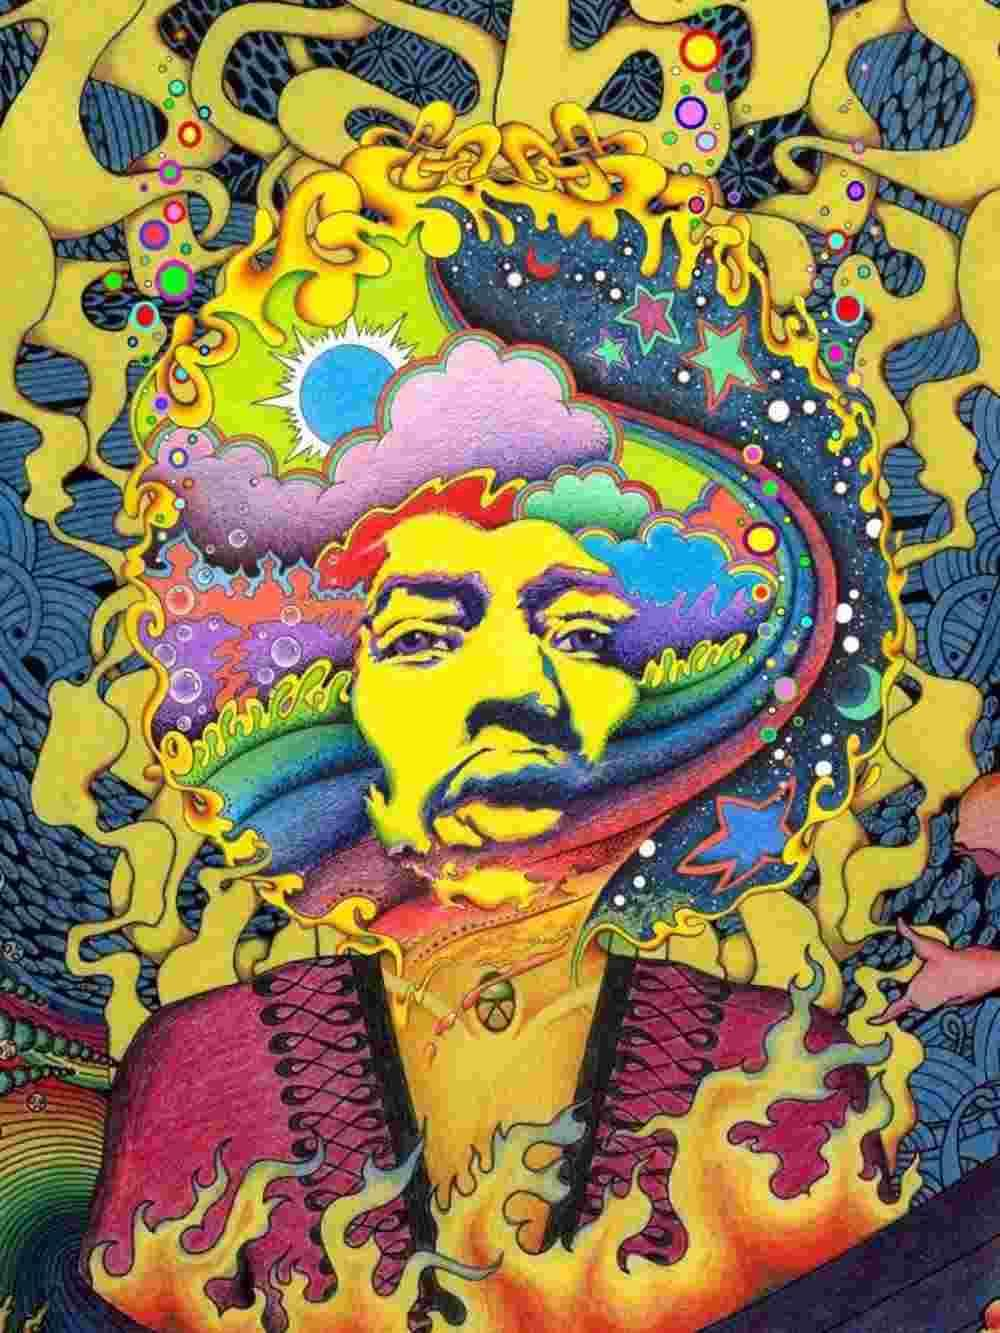 Psychedelic Trippy Art Silk Poster 32 X 24 Decor 040 Affordable Wall ...